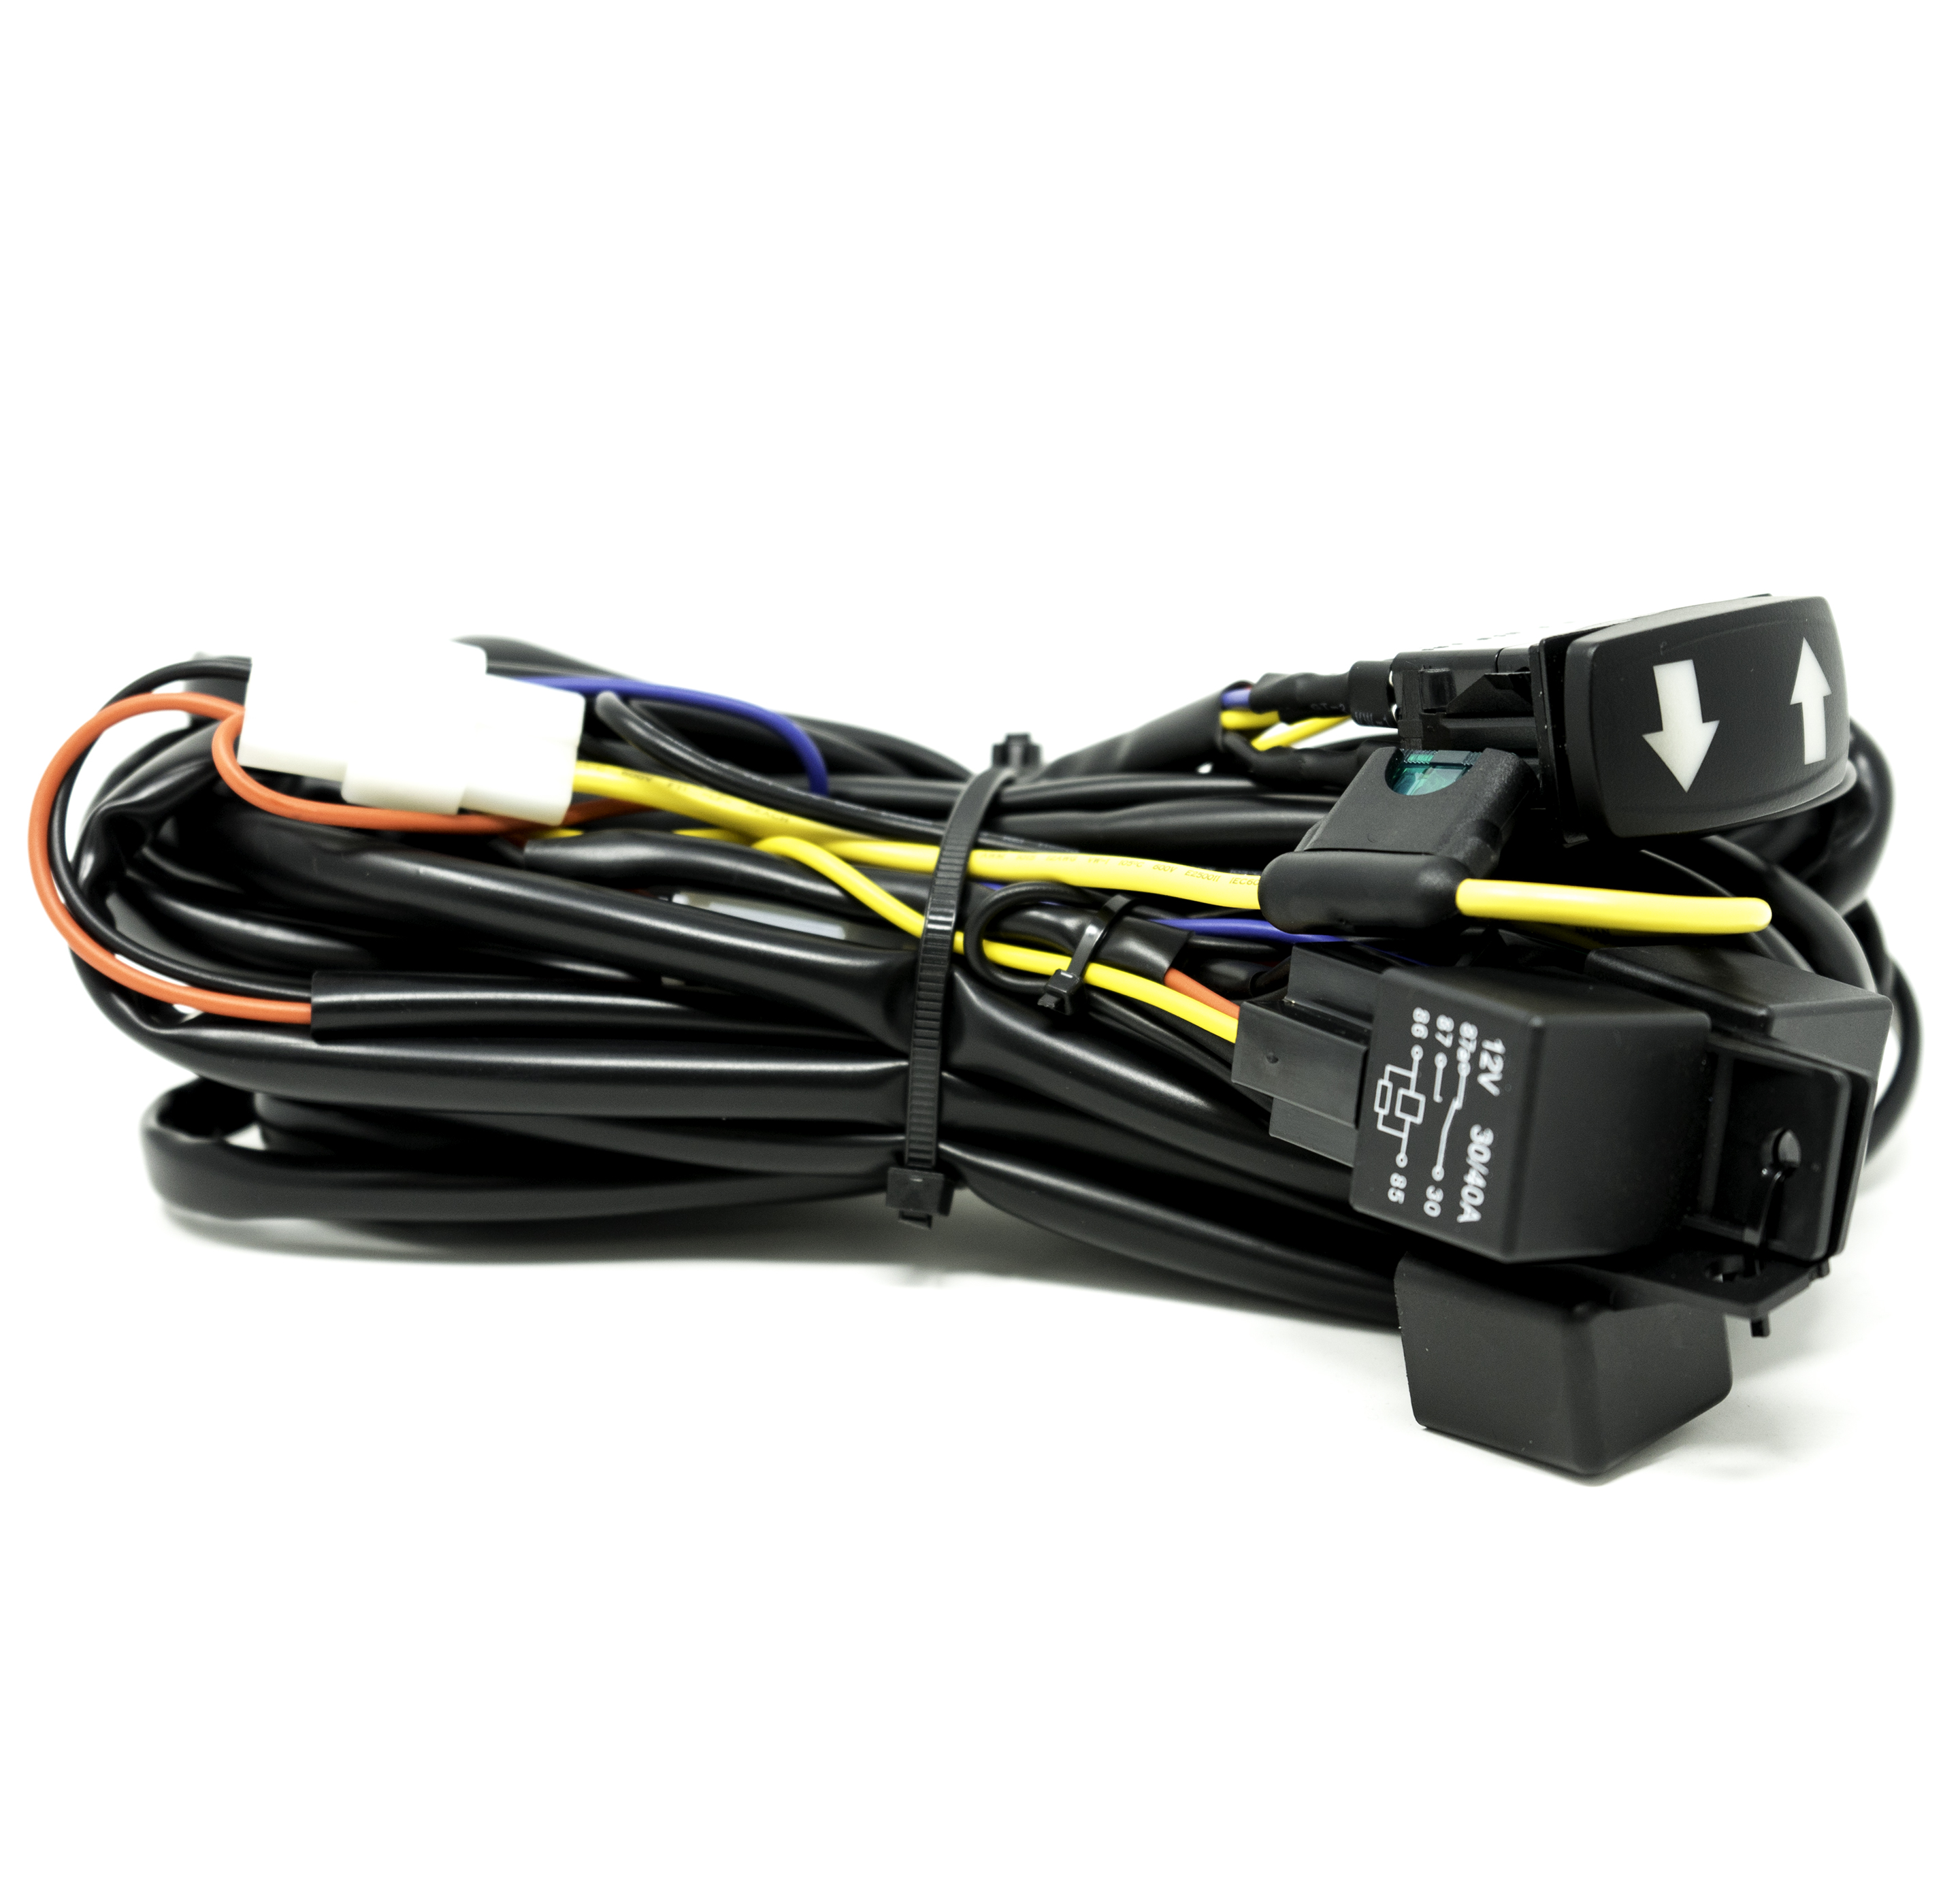 Home > - Vehicle Specific Lighting > Polaris > Baja Designs RTL-S Turn  Signal Wiring Harness for UTVs